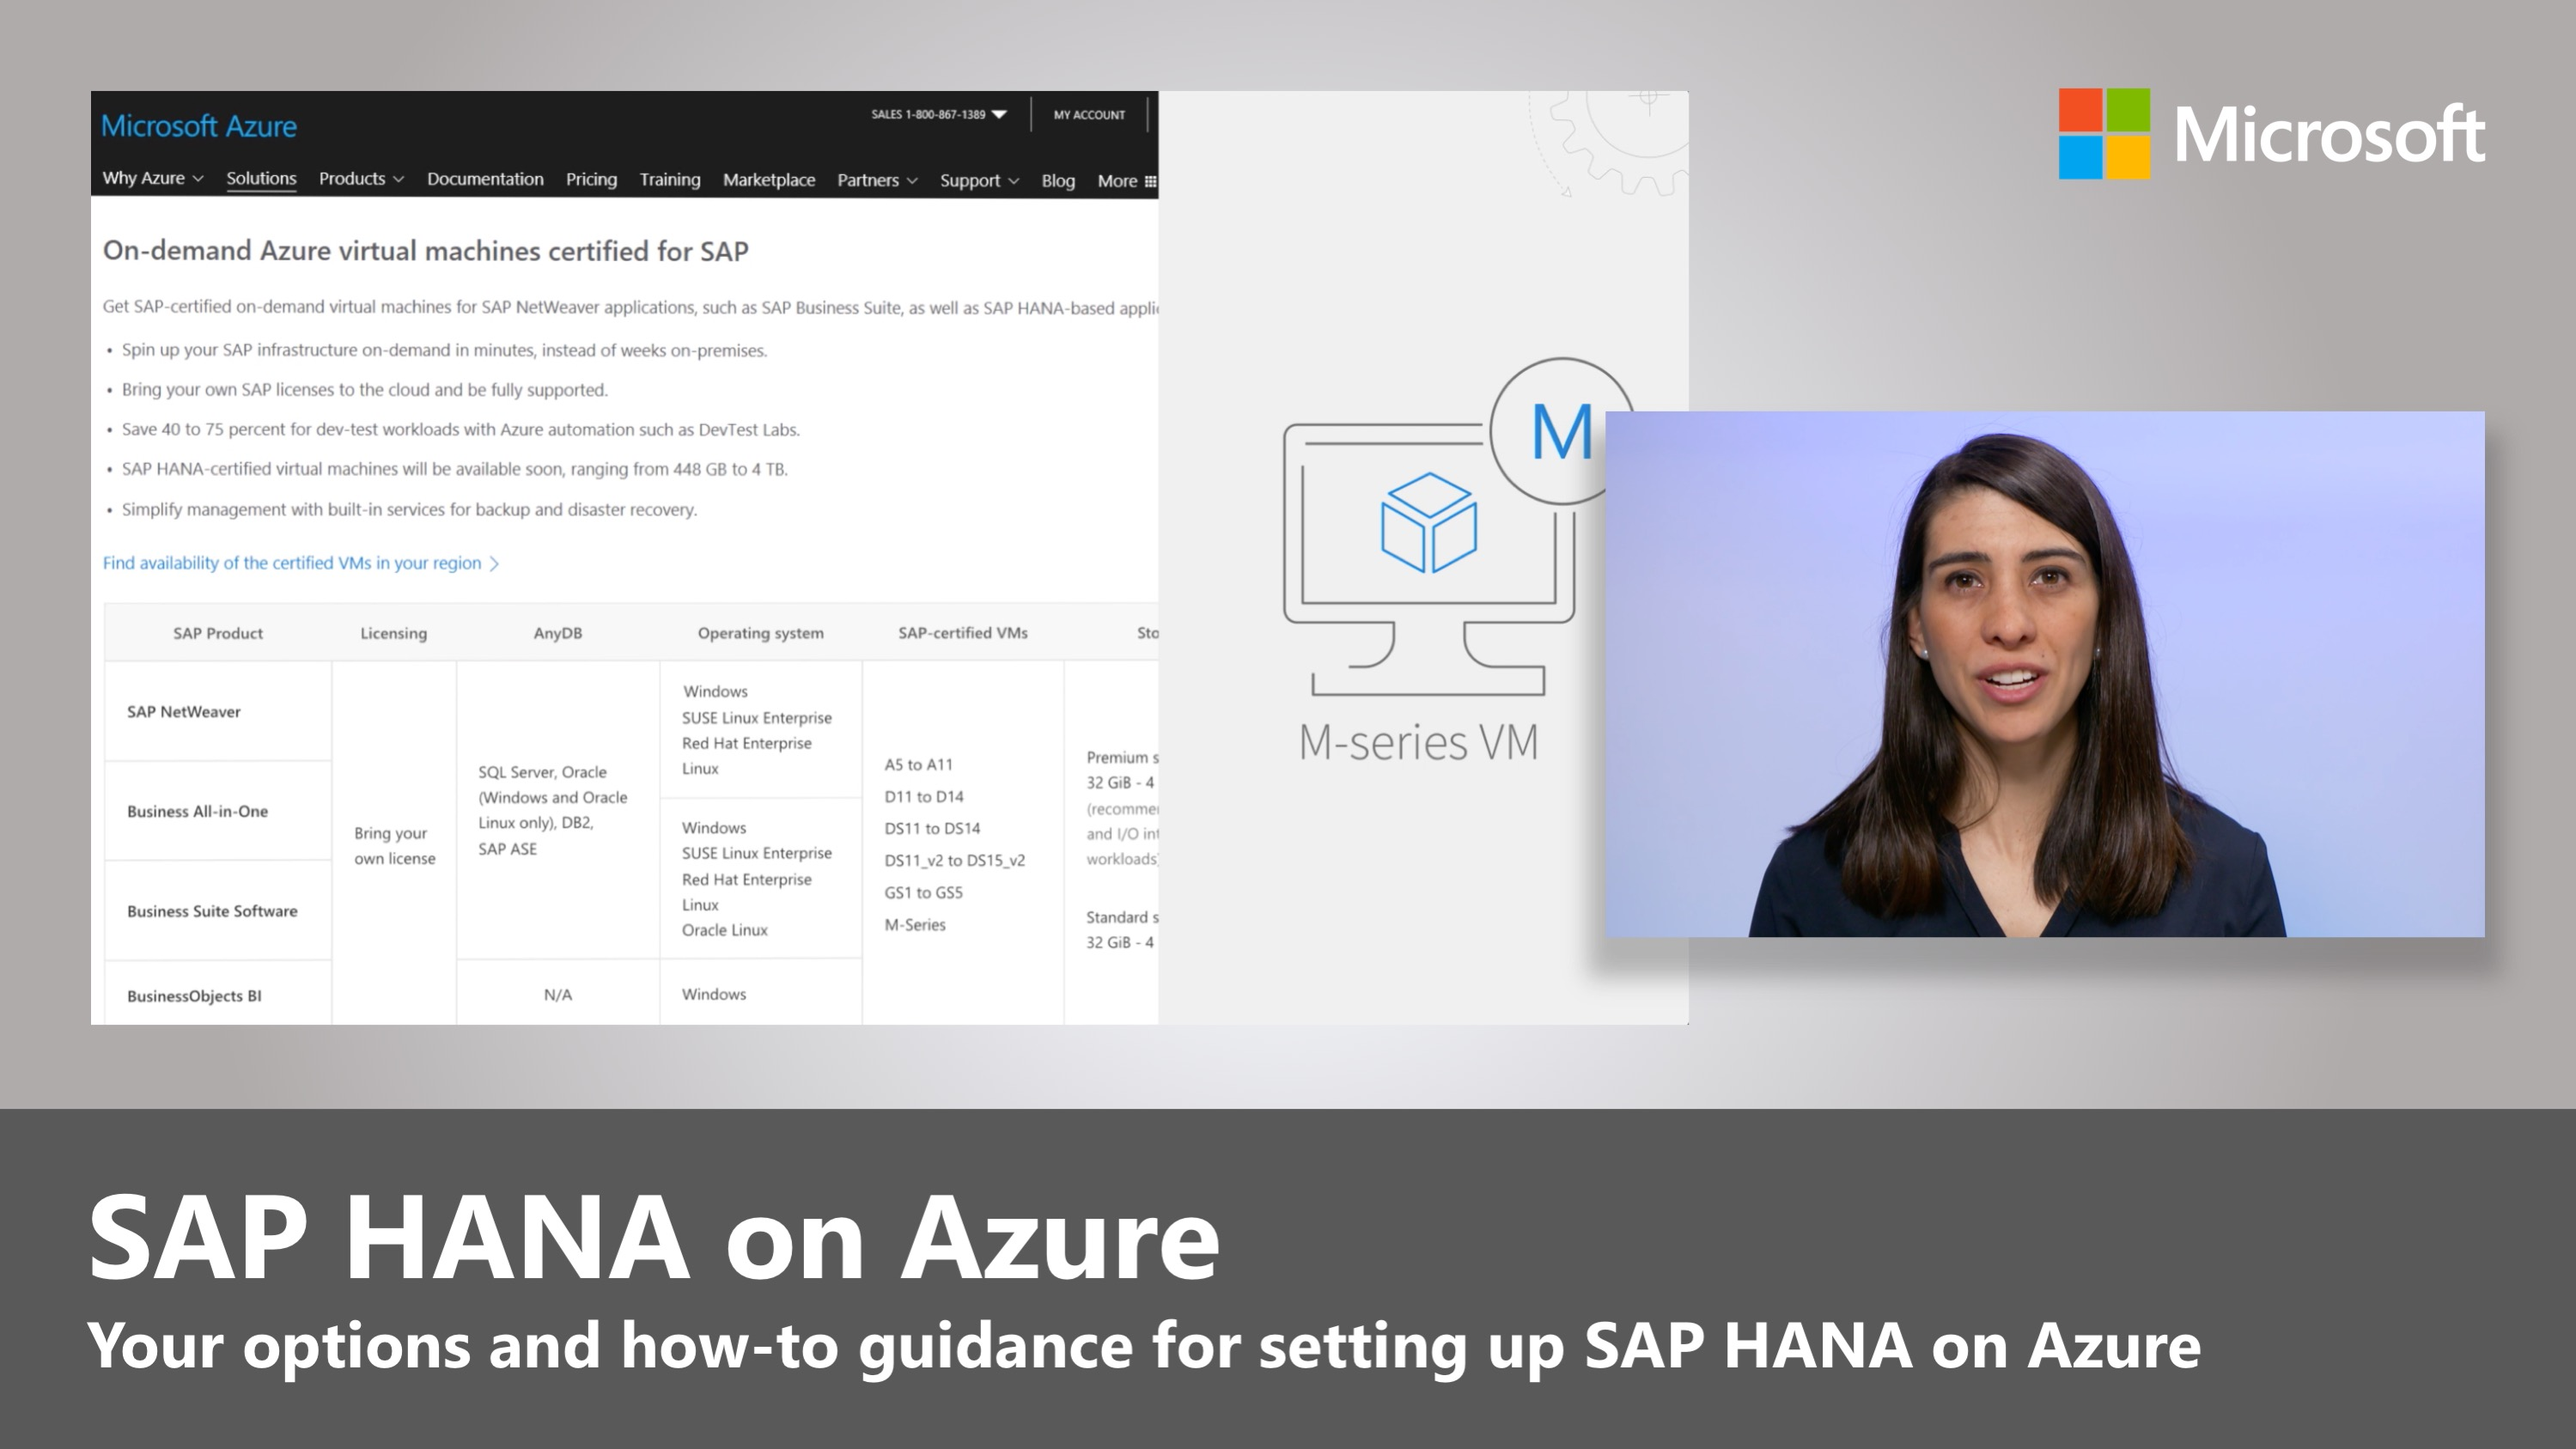 Artwork for SAP HANA on Azure M-series VMs